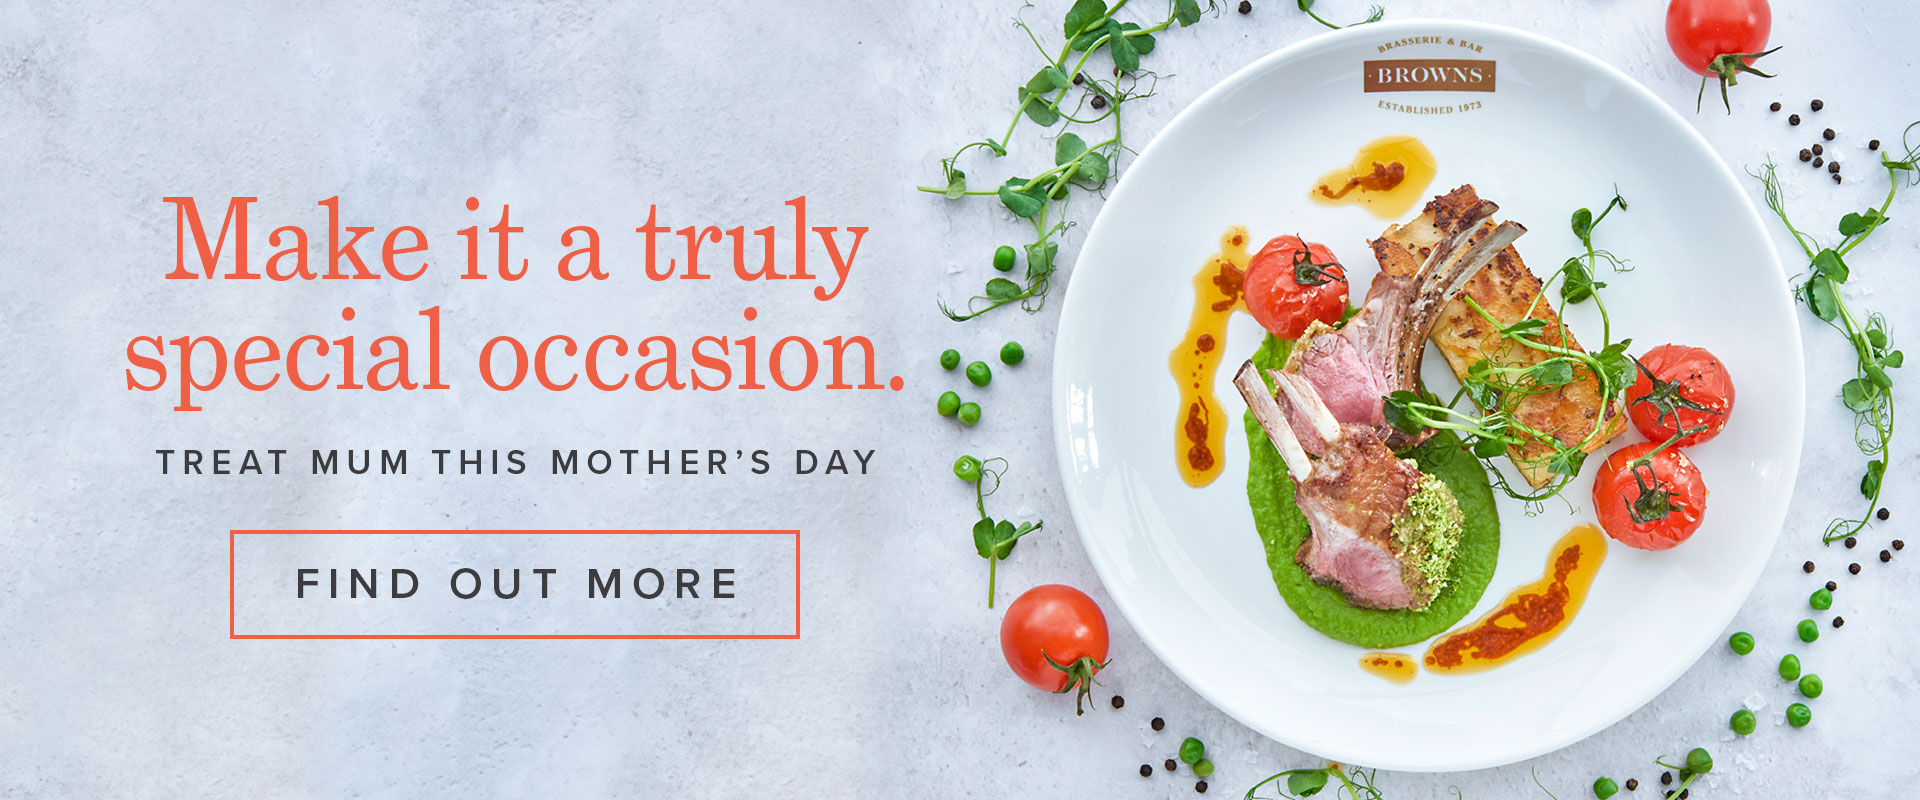 Mother's Day 2019 at Browns Milton Keynes